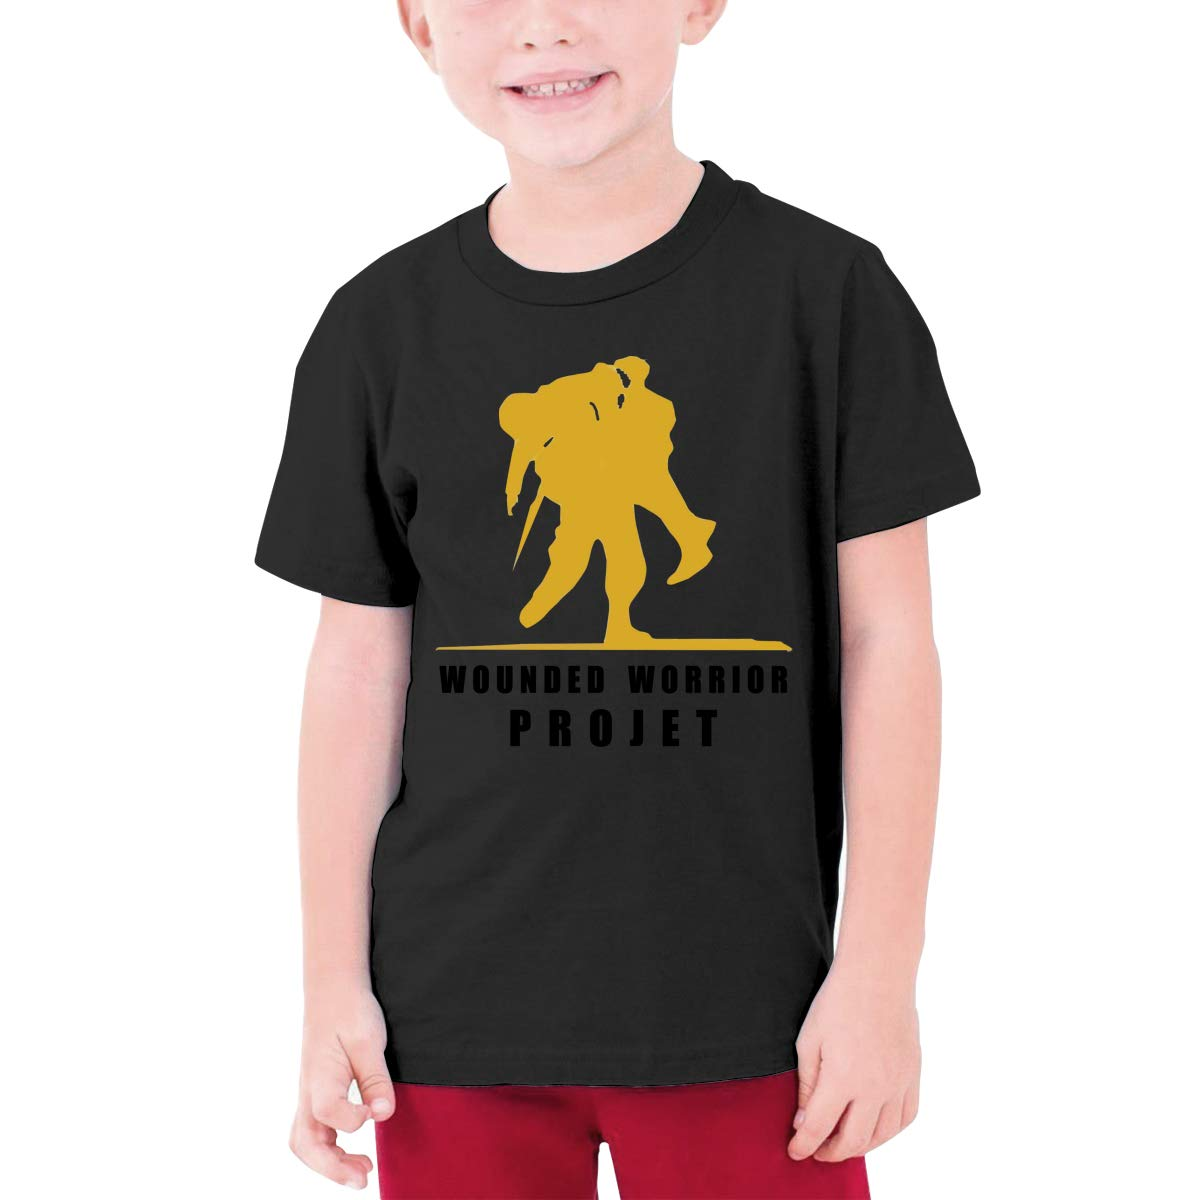 Alffe Wounded Warrior Project T-Shirt Boy Kids O-Neck 3D Printing Youth Fashion Tops